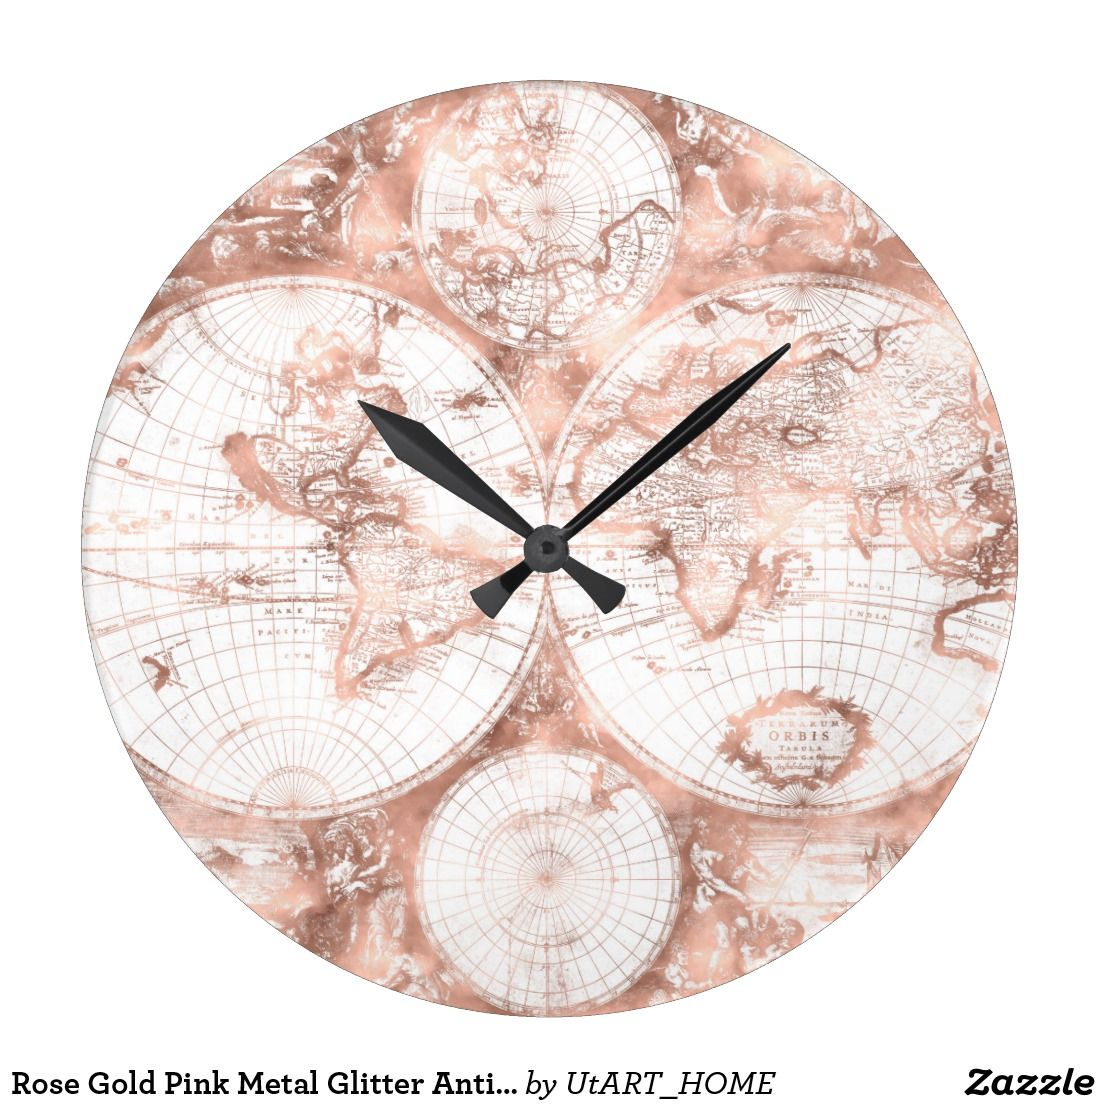 Rose gold pink metal glitter antique world map square wall clock rose gold pink metal glitter antique world map square wall clock this trendy retro shimmering world gumiabroncs Image collections